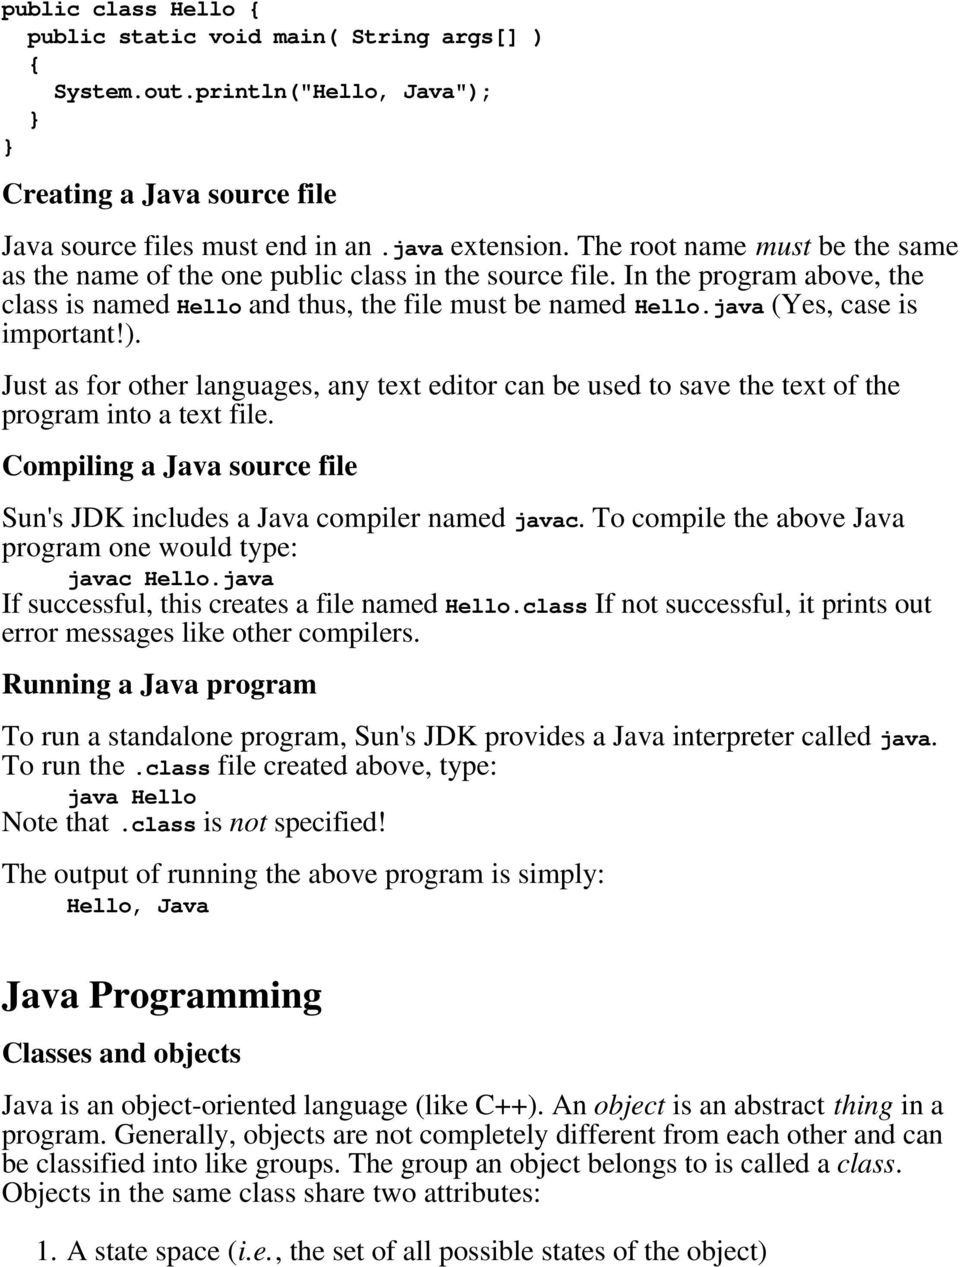 An Introduction to the Java Programming Language History of